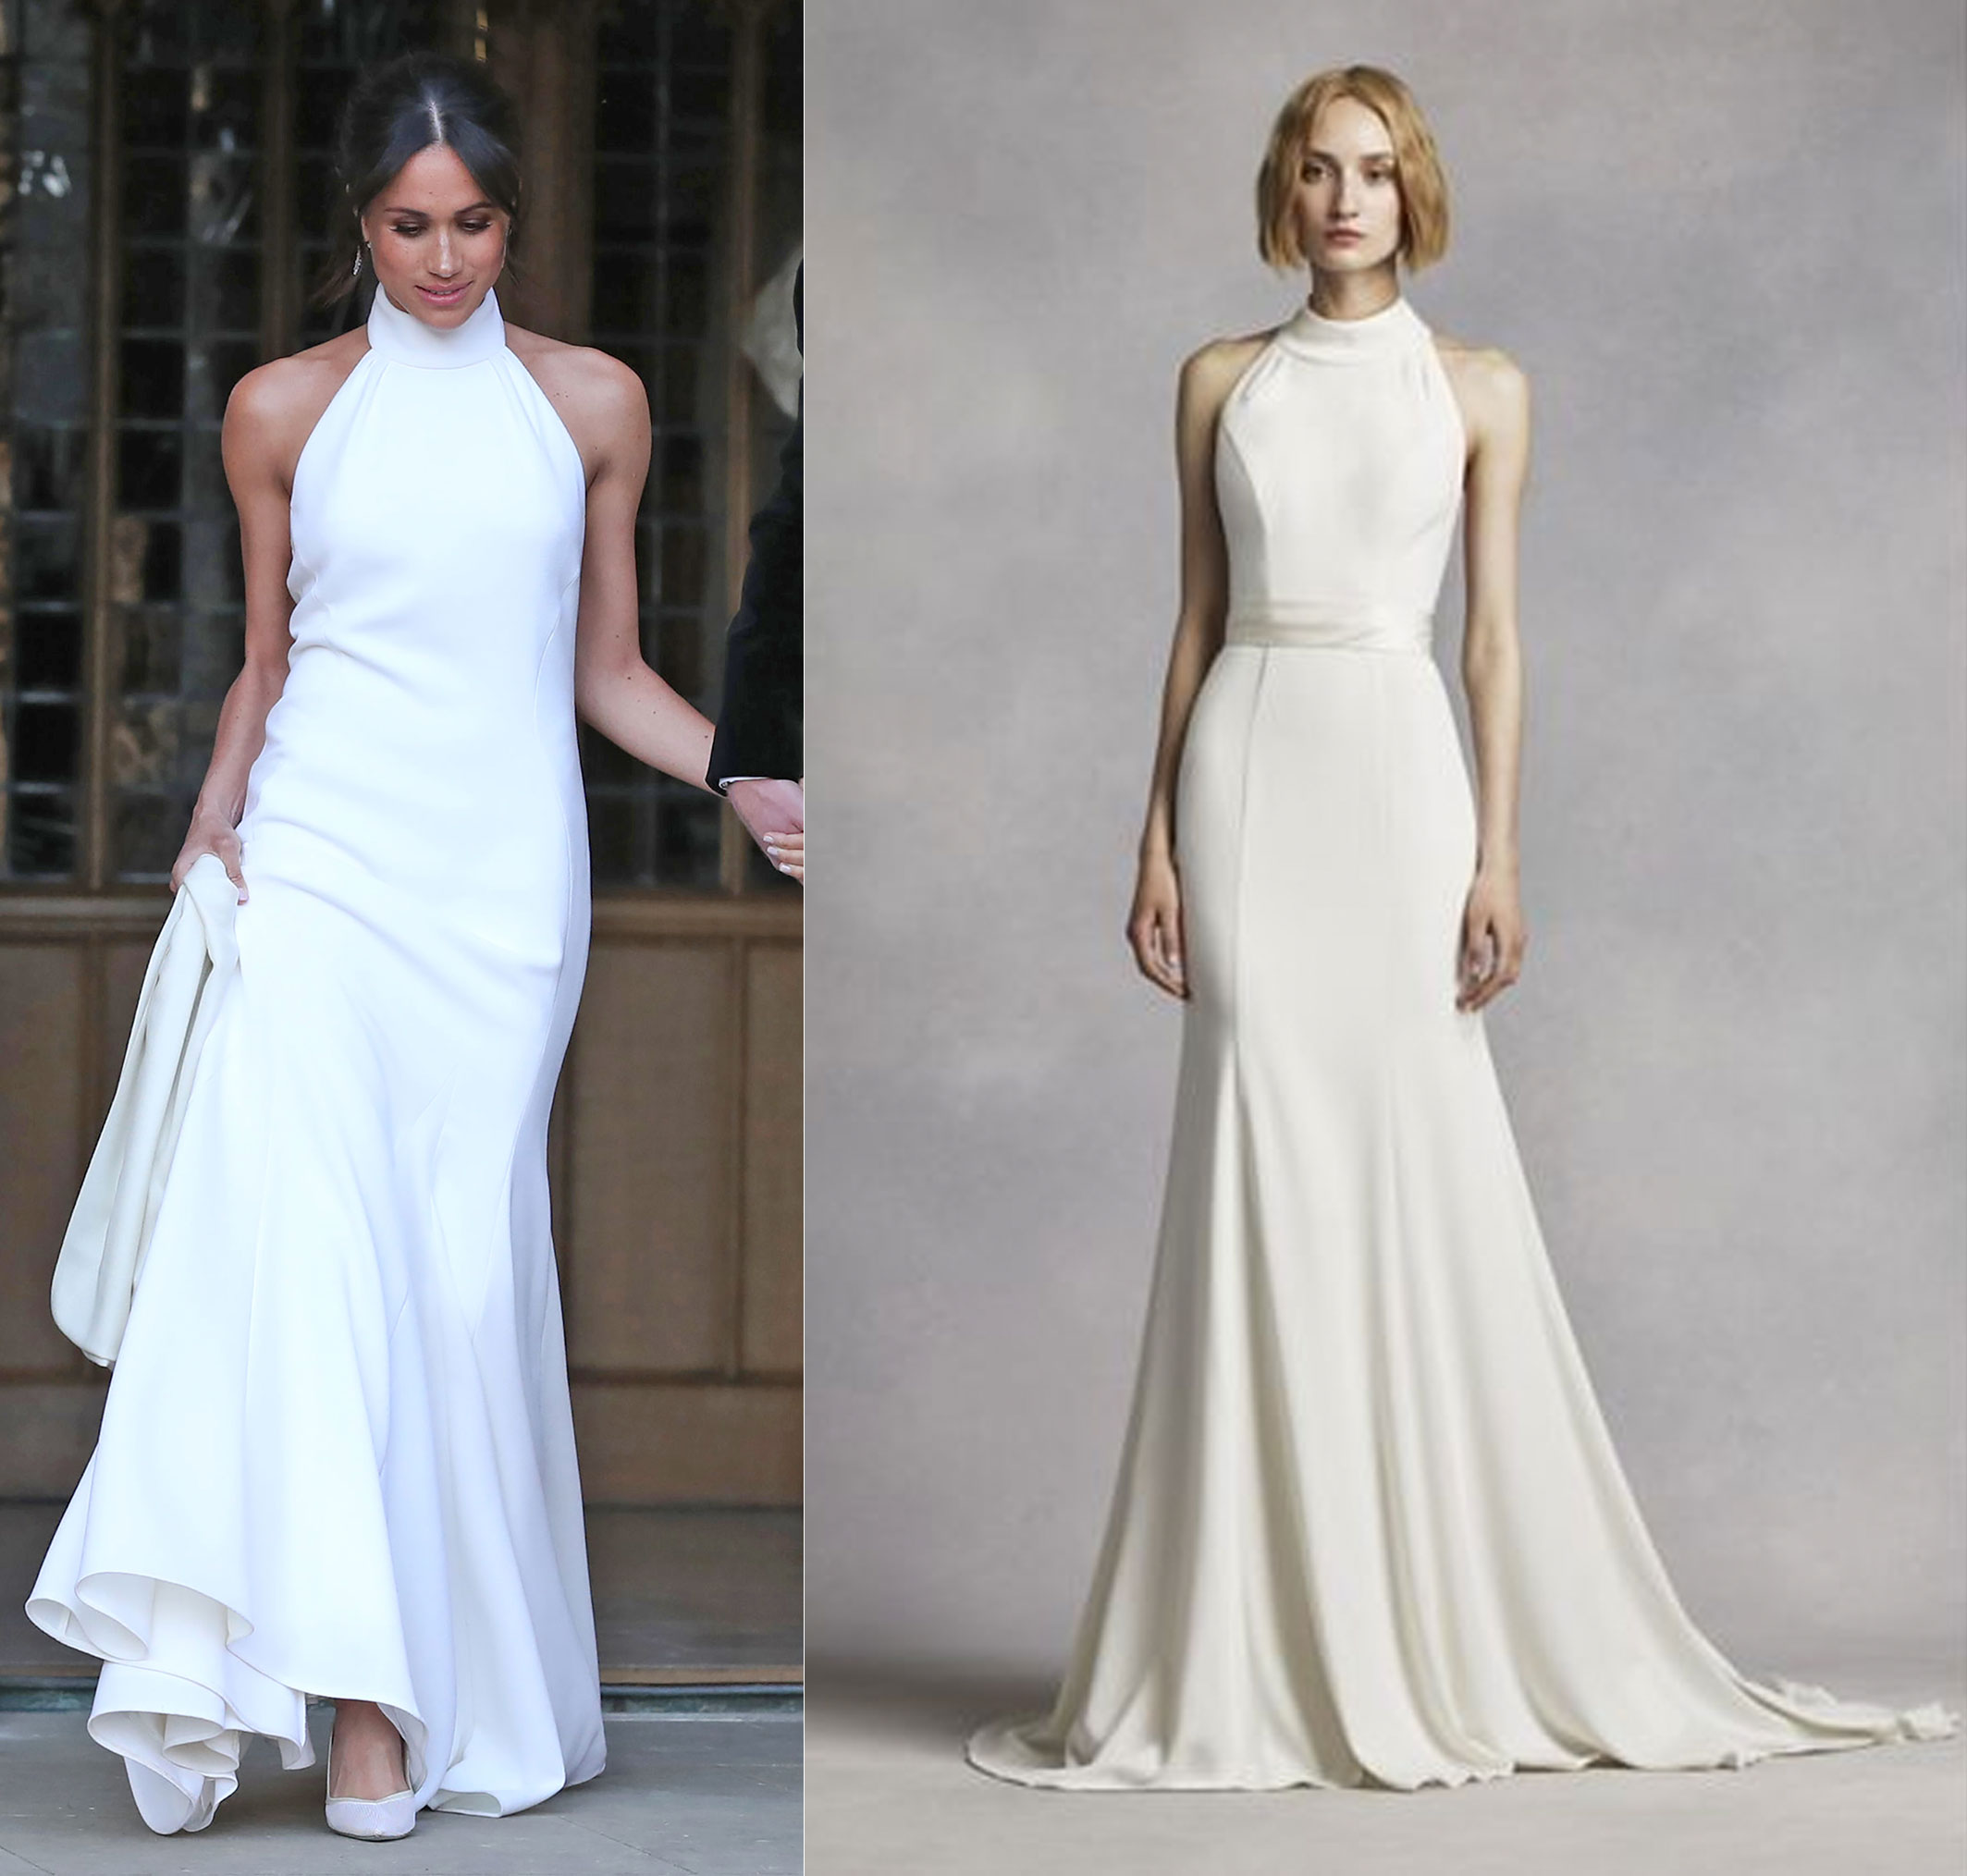 meghan markle halter wedding dress off 71 buy nova betel contabilidade